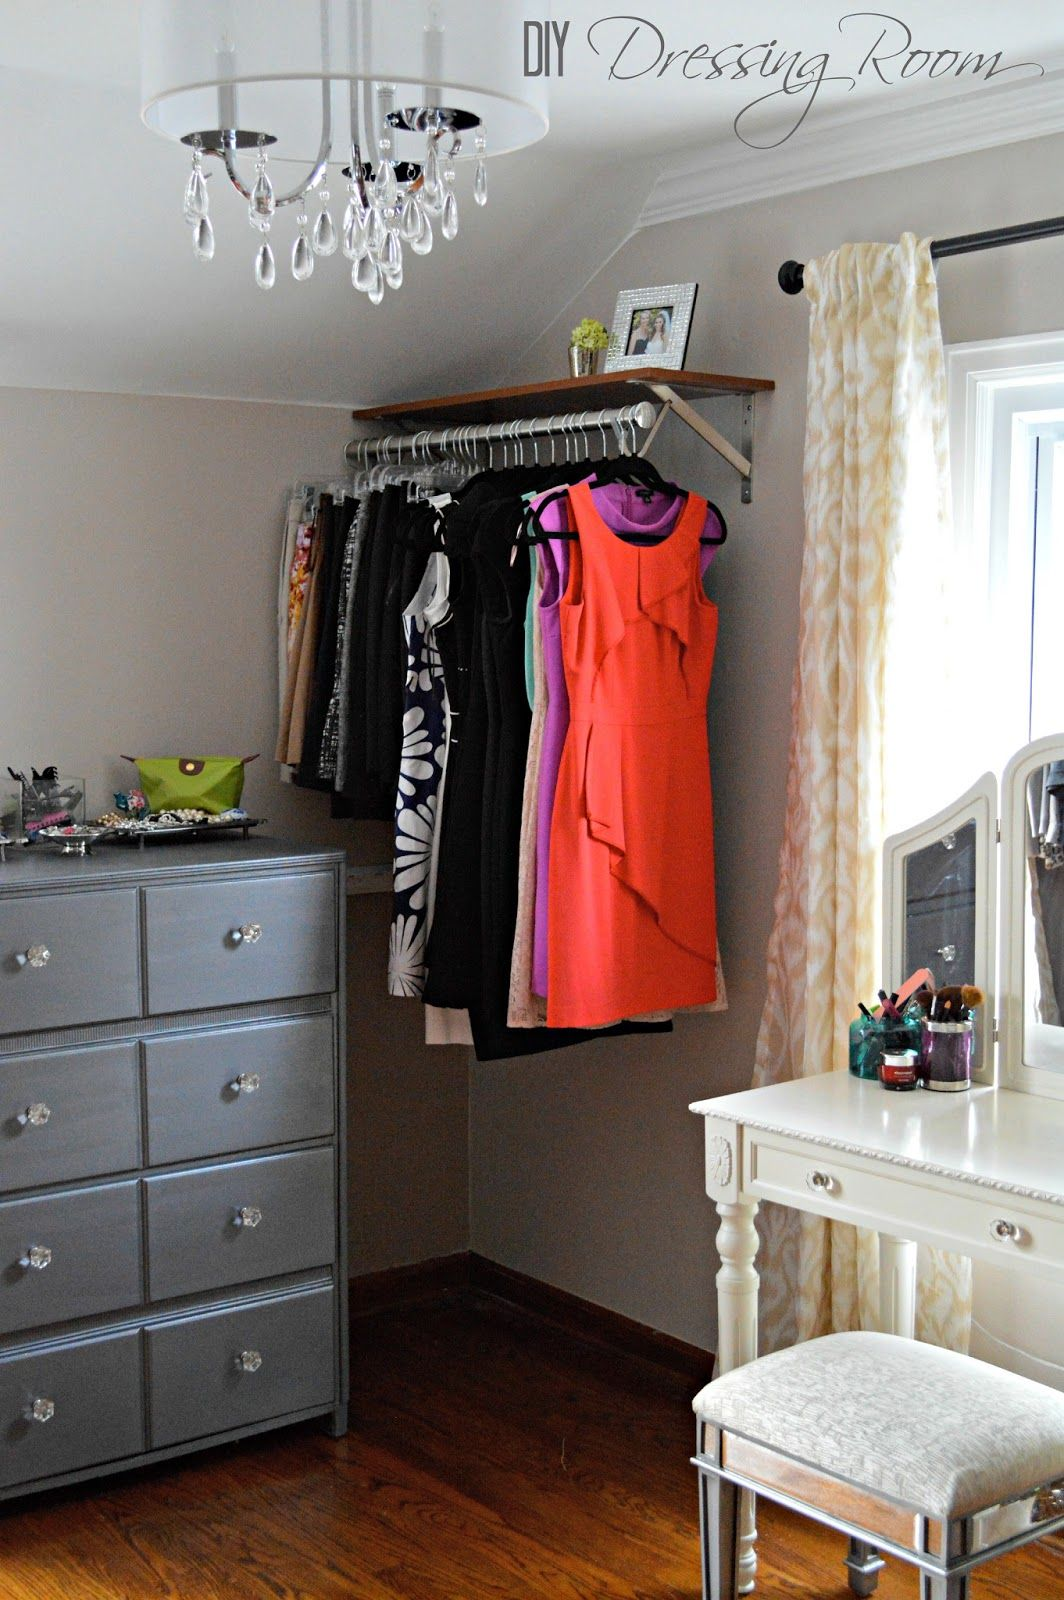 Ways To Store Clothes Without A Closet Inexpensive Dresses - Cool diy coat rack for maximizing closet space